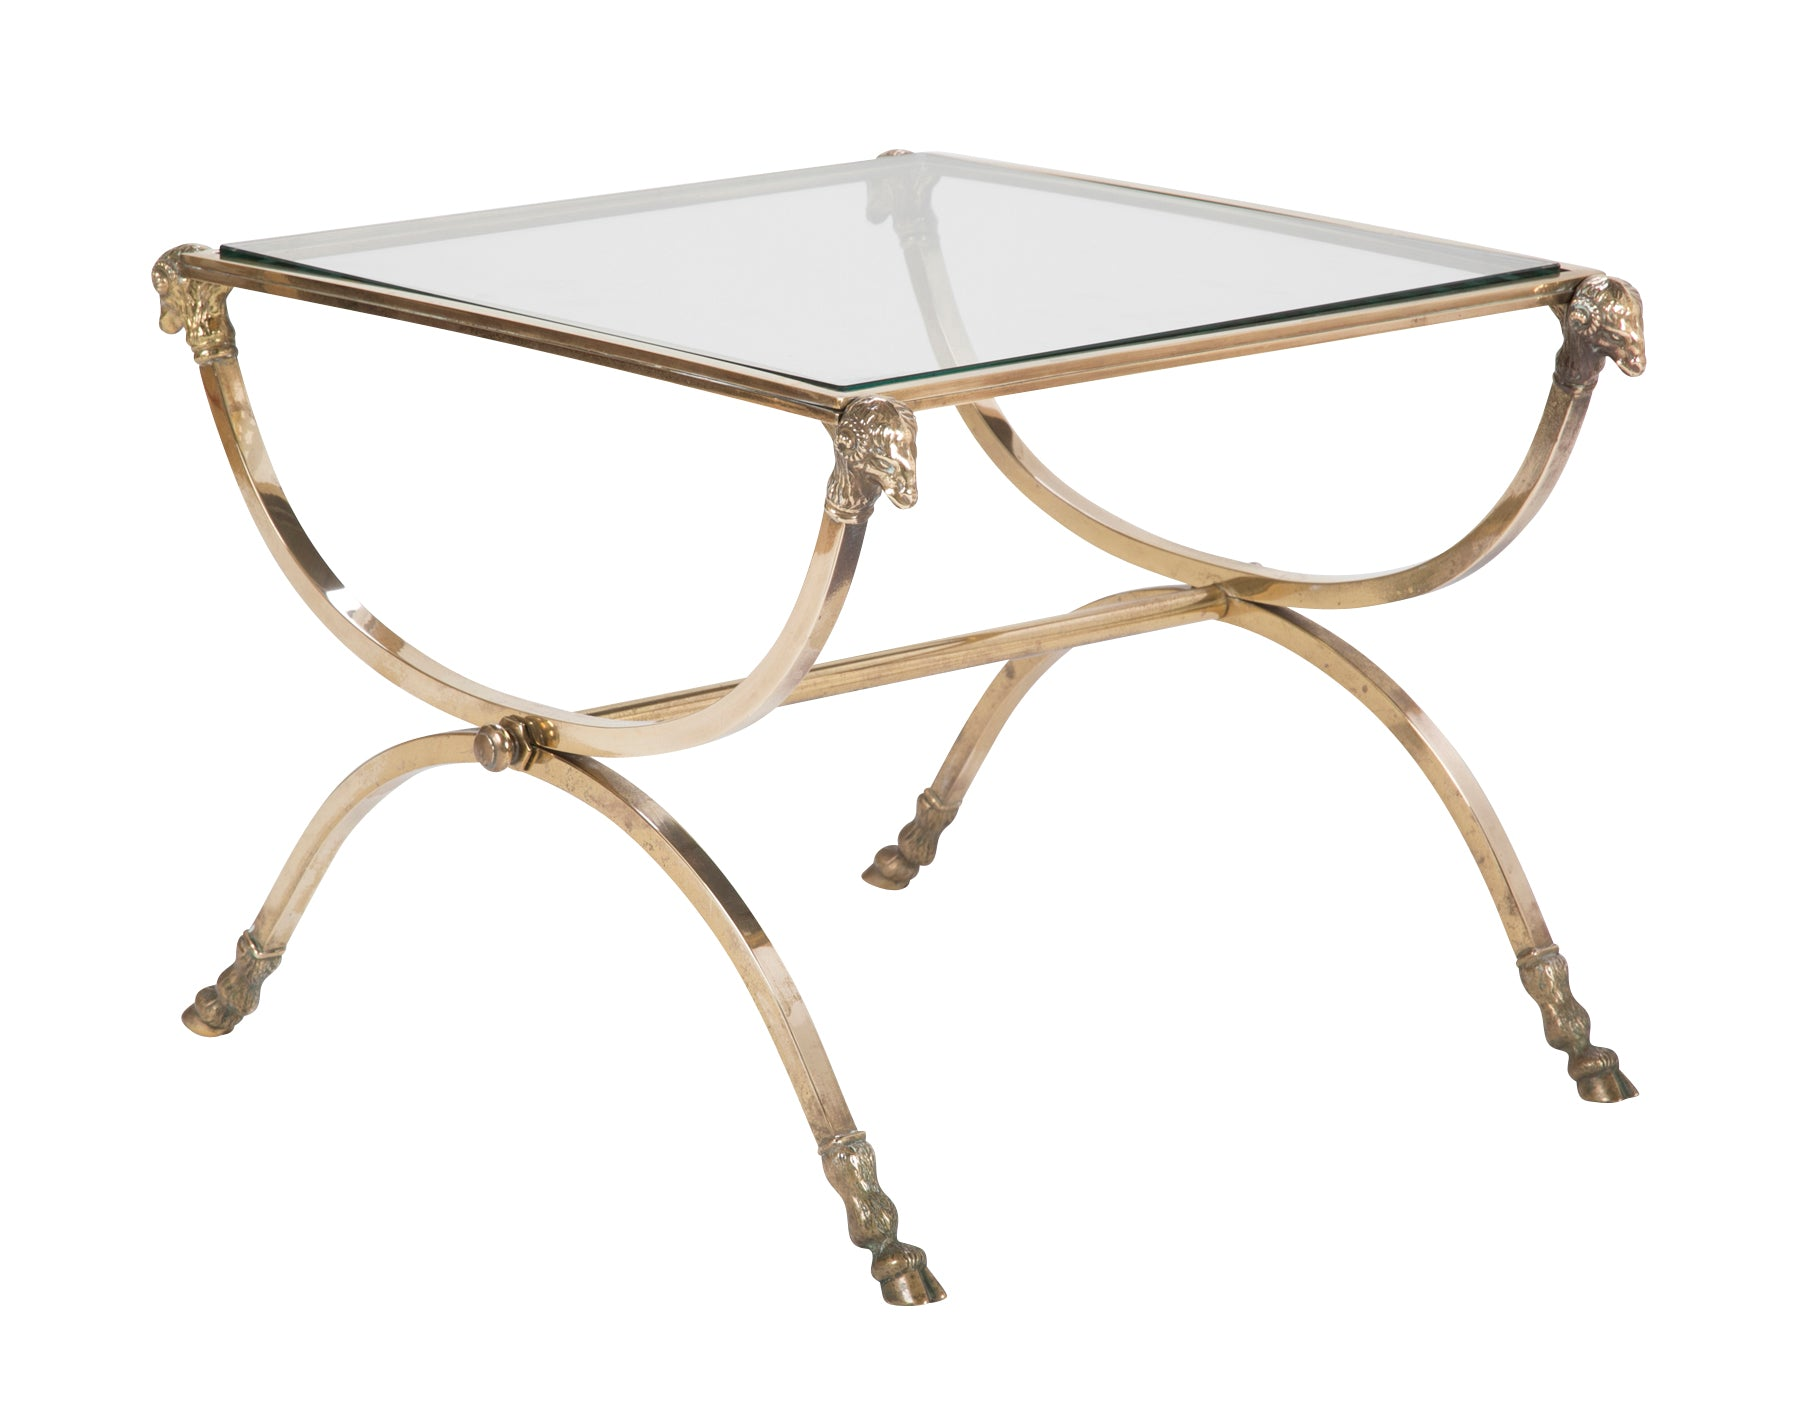 Italian Glass Coffee Table.Italian Neoclassical Style Bronze Glass Side Table